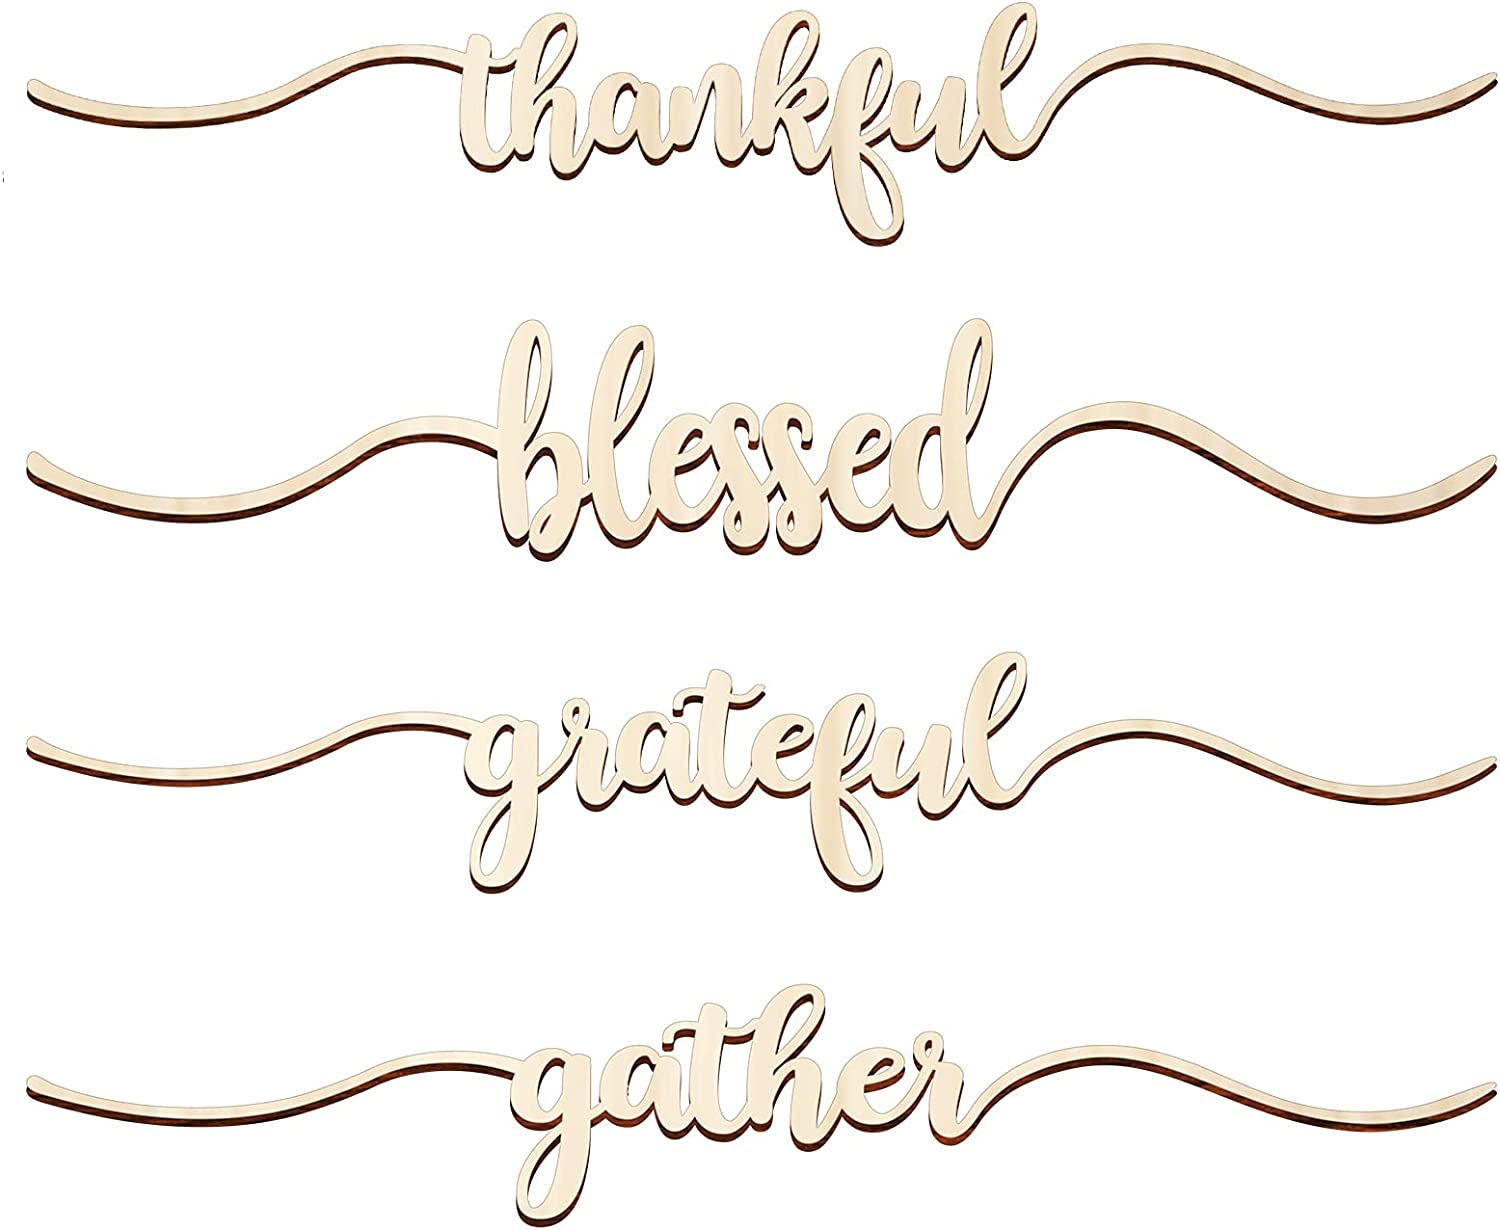 Jetec 8 Pieces Thanksgiving Wood Cutout Cards Sign Thankful Grateful Blessed Gather Wood Word Table Decorations Unfinished Rustic Wood Decor Thanksgiving Wall Decoration, 2 x 9.8 Inch (Wood Color)